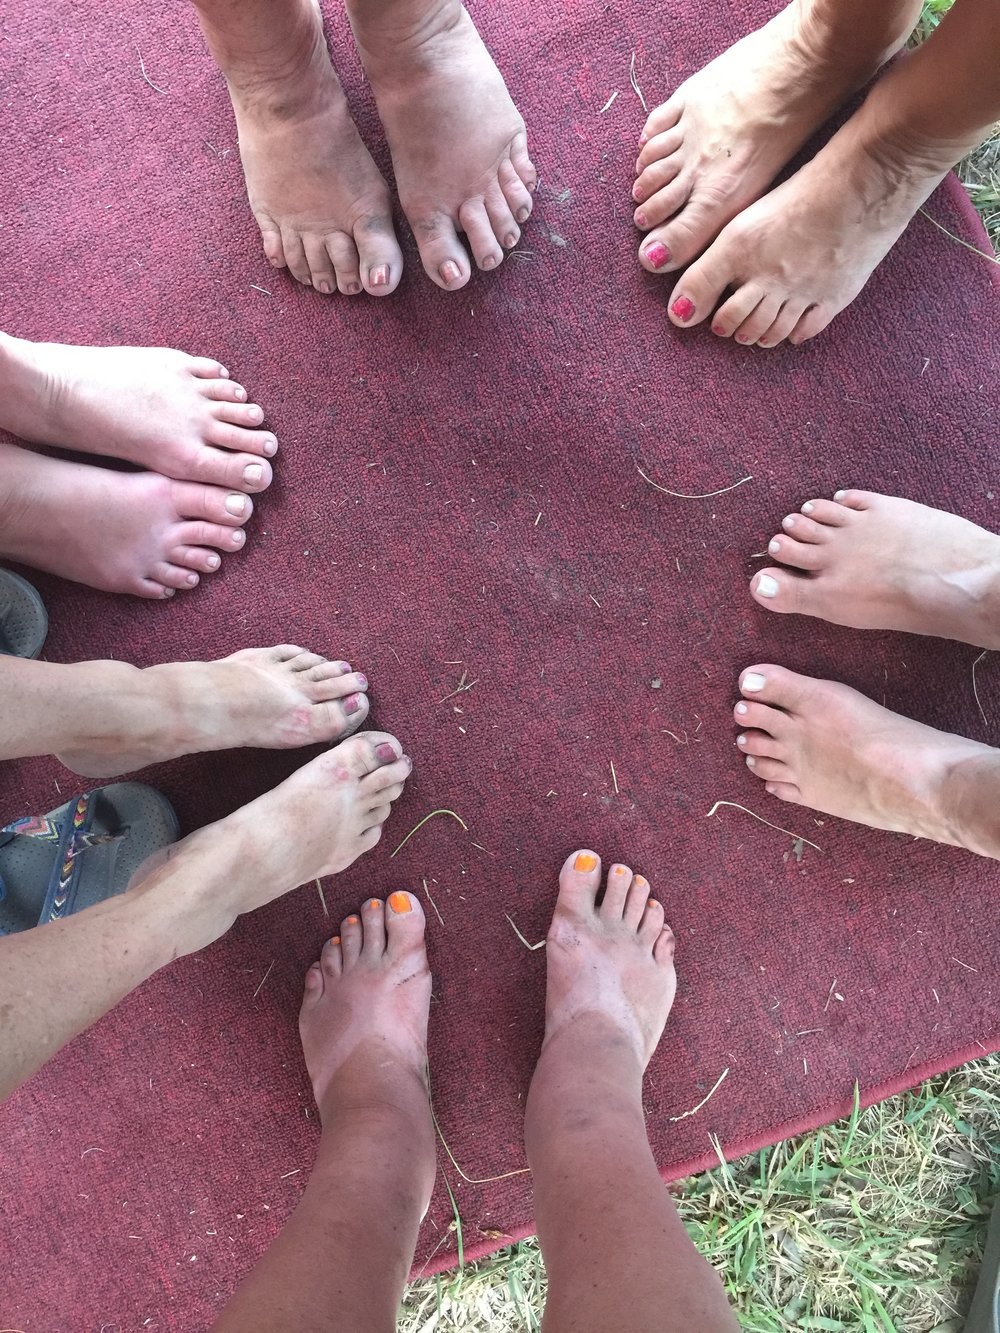 Camping gives you dirty feet!